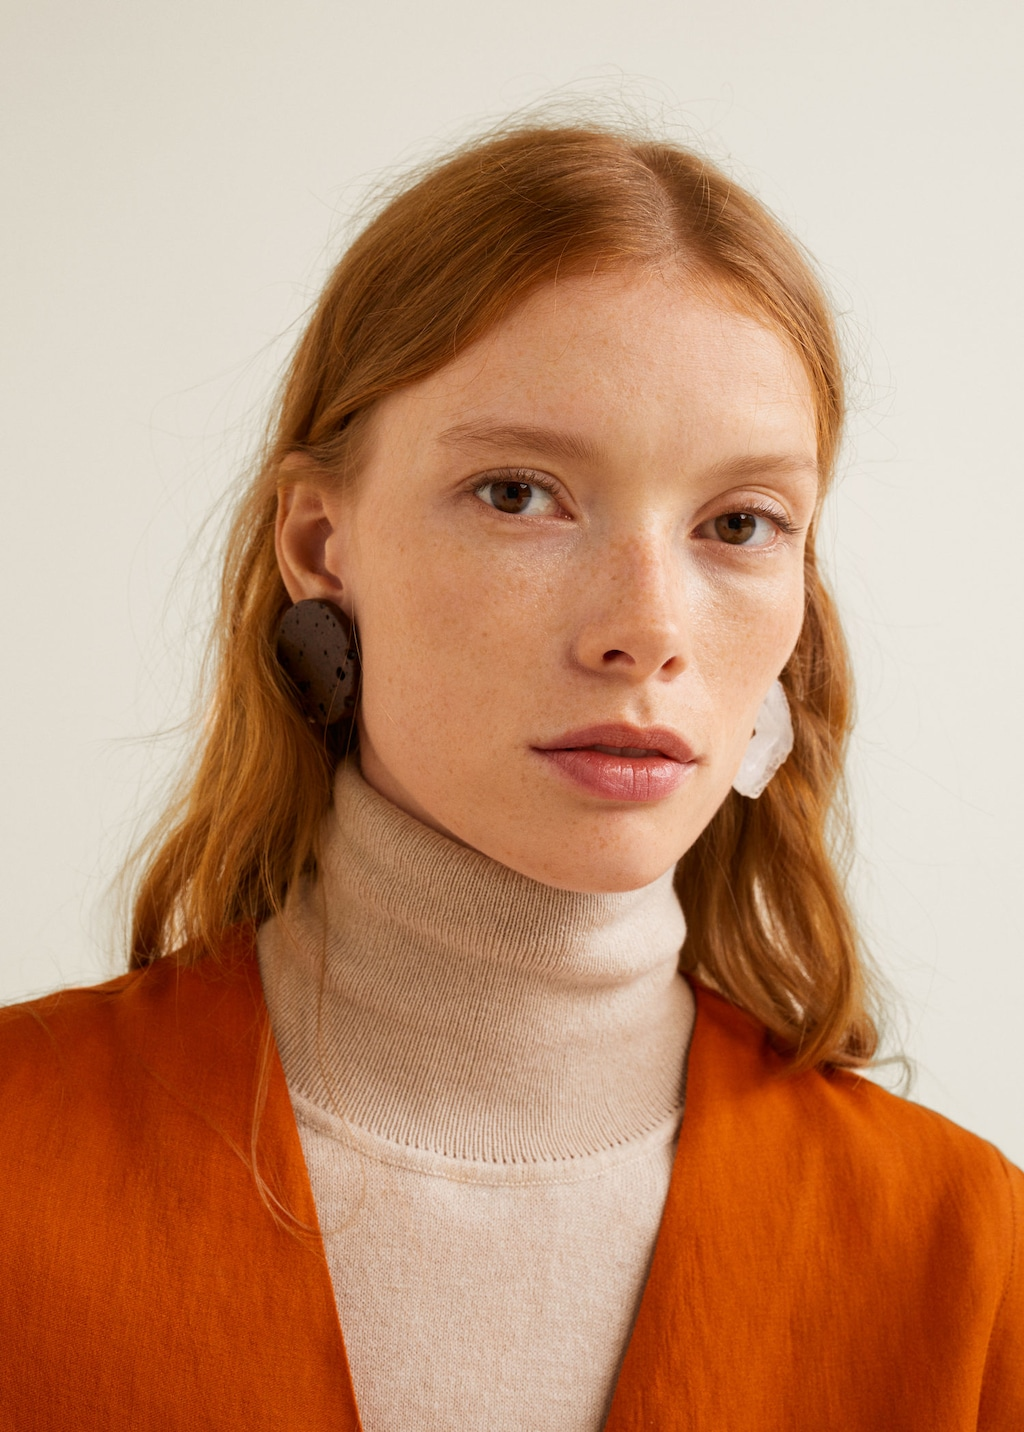 STYLE - 10 Abstract Earrings You Need To Spazz Up Your Everyday Look